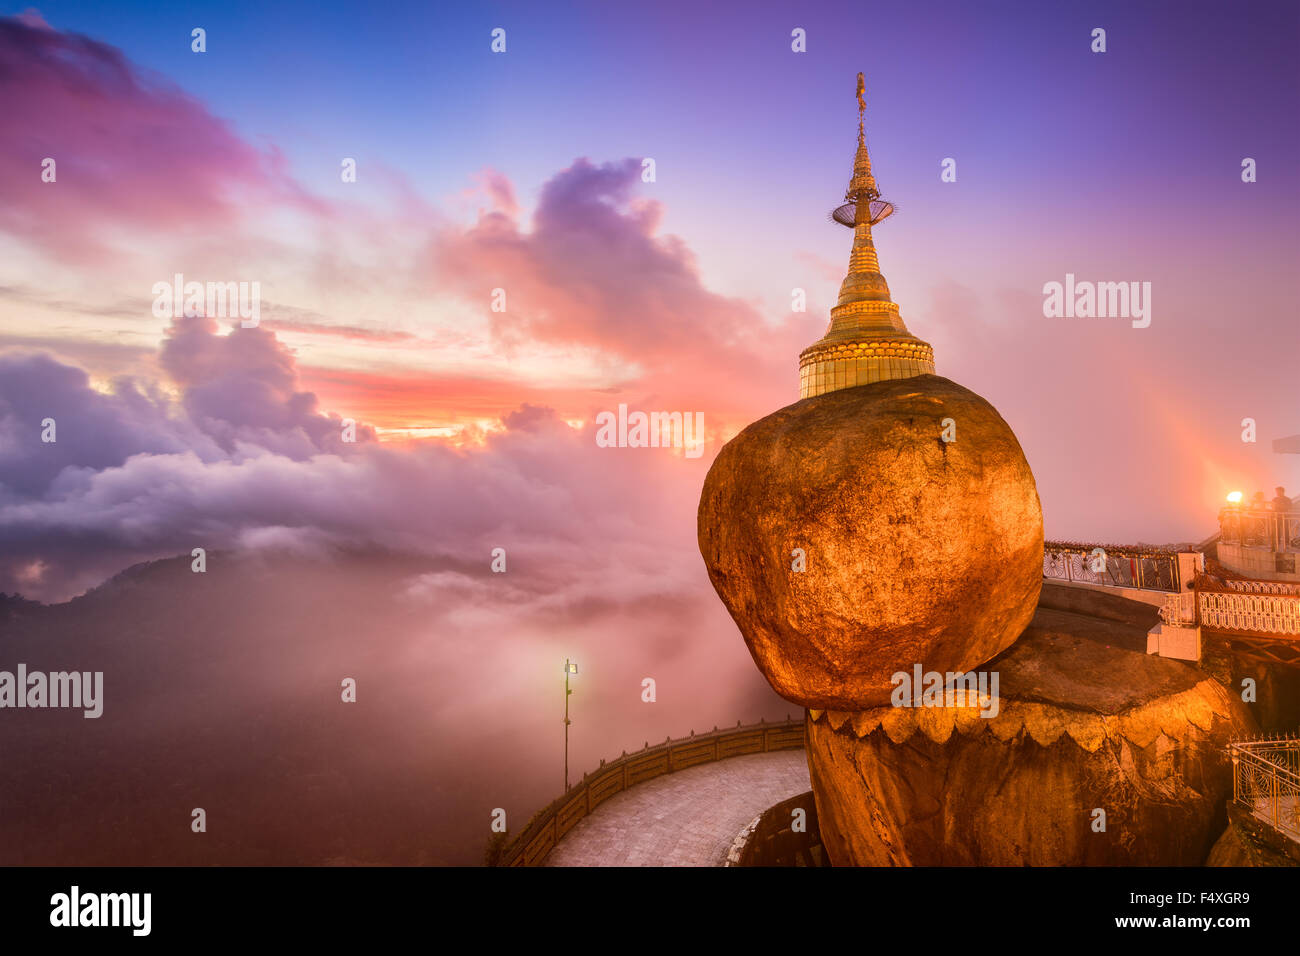 Golden rock of Kyaiktiyo, Myanmar. - Stock Image